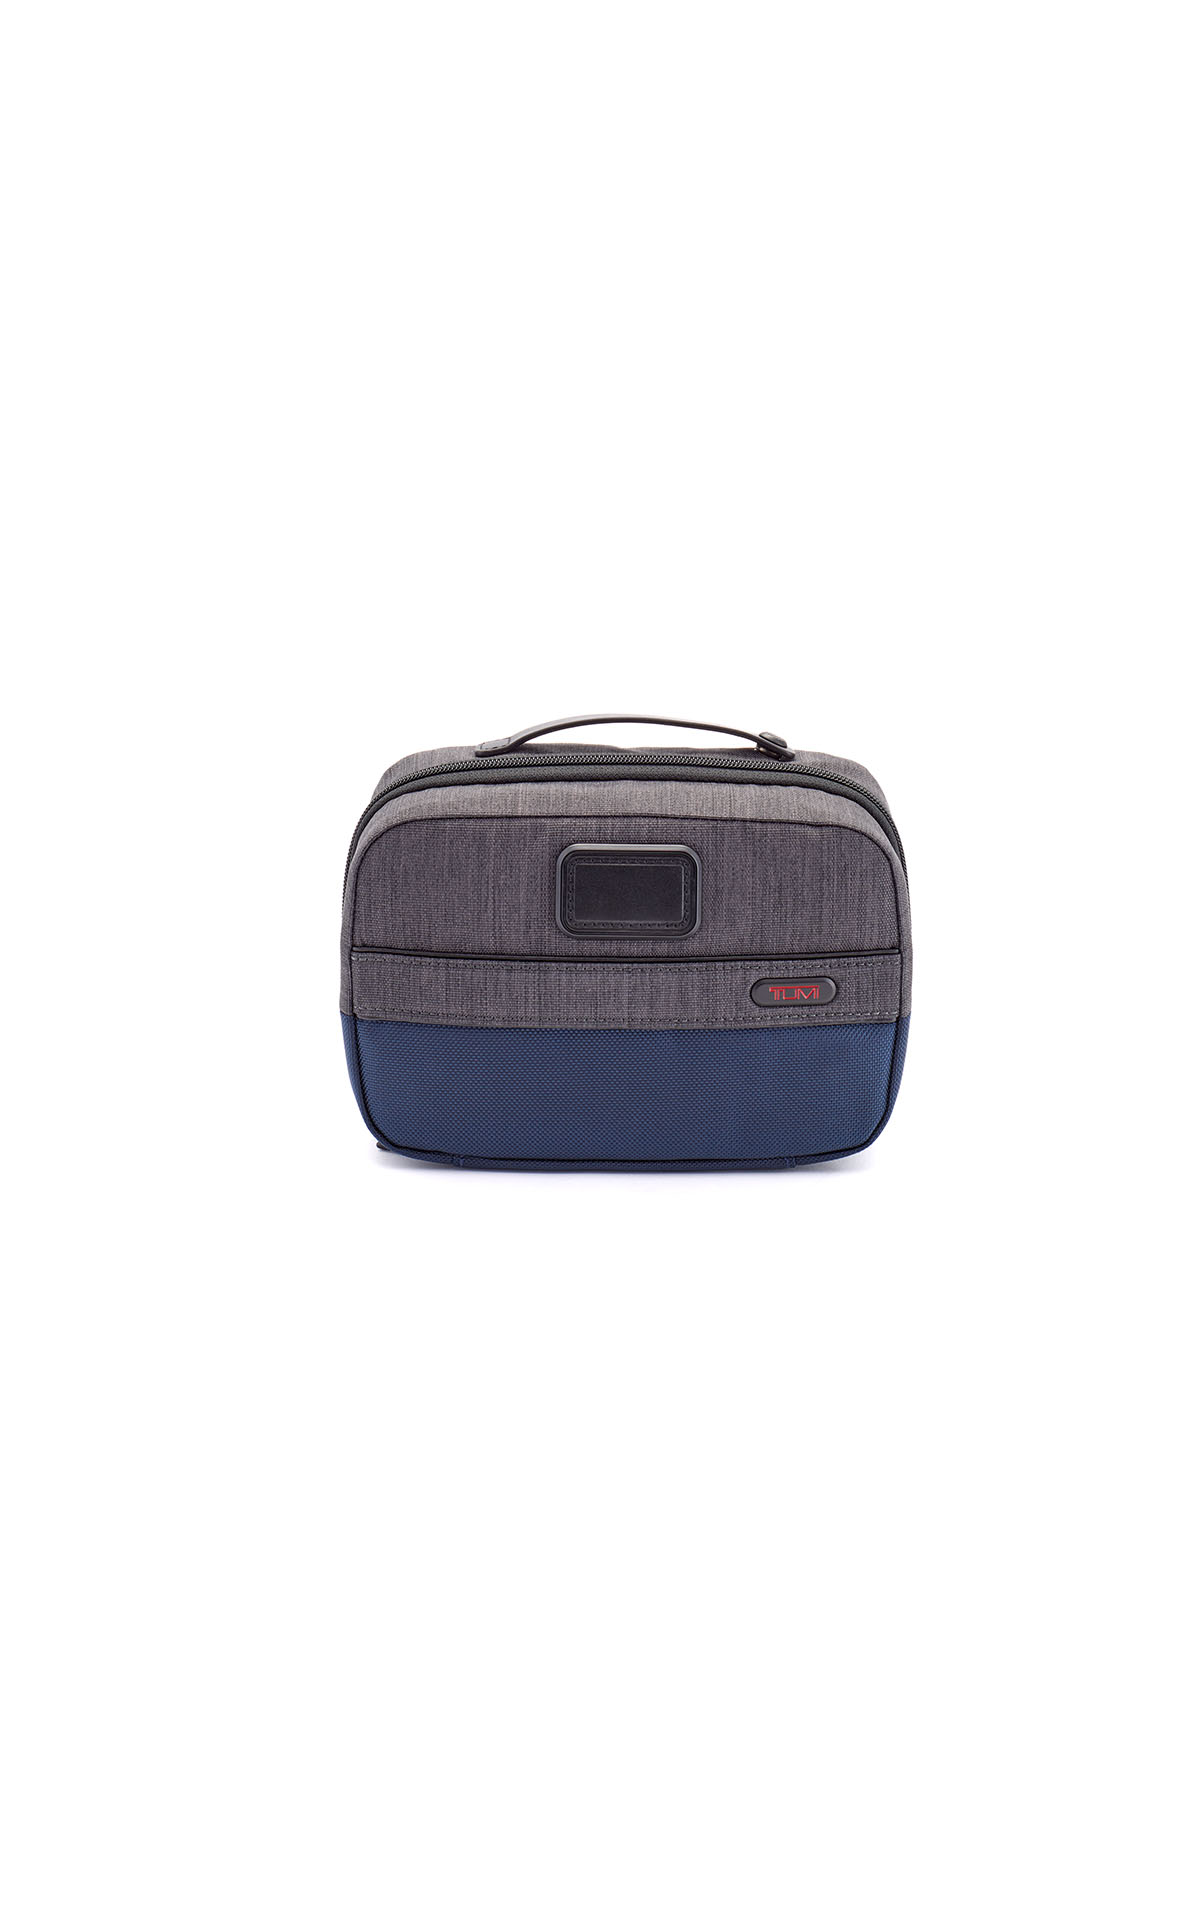 Tumi Split Case Travel Kit at The Bicester Village Shopping Collection